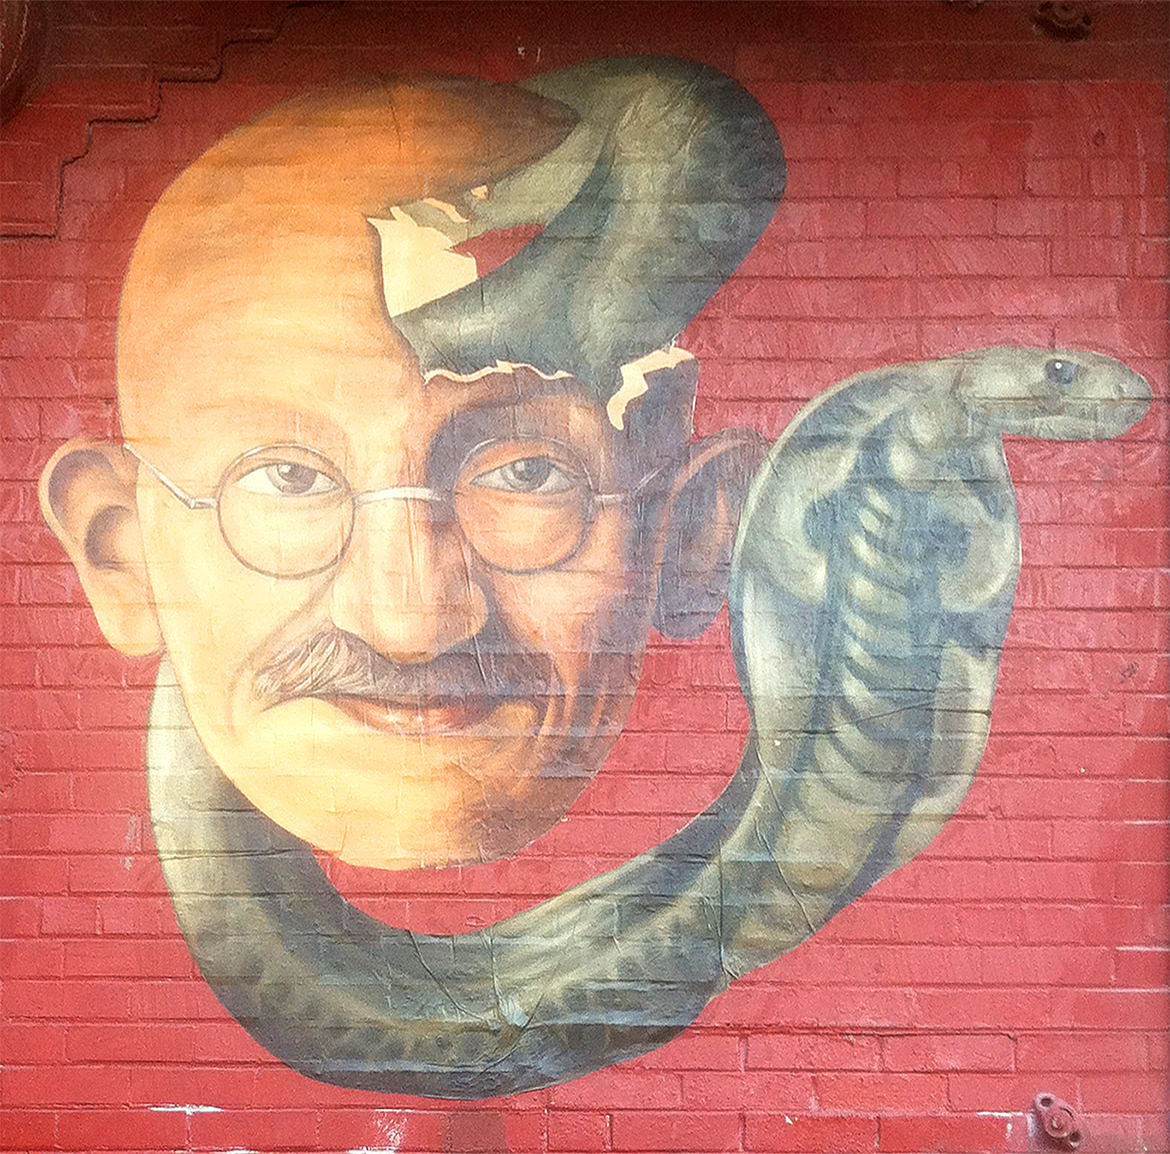 Gandhi and the cobra